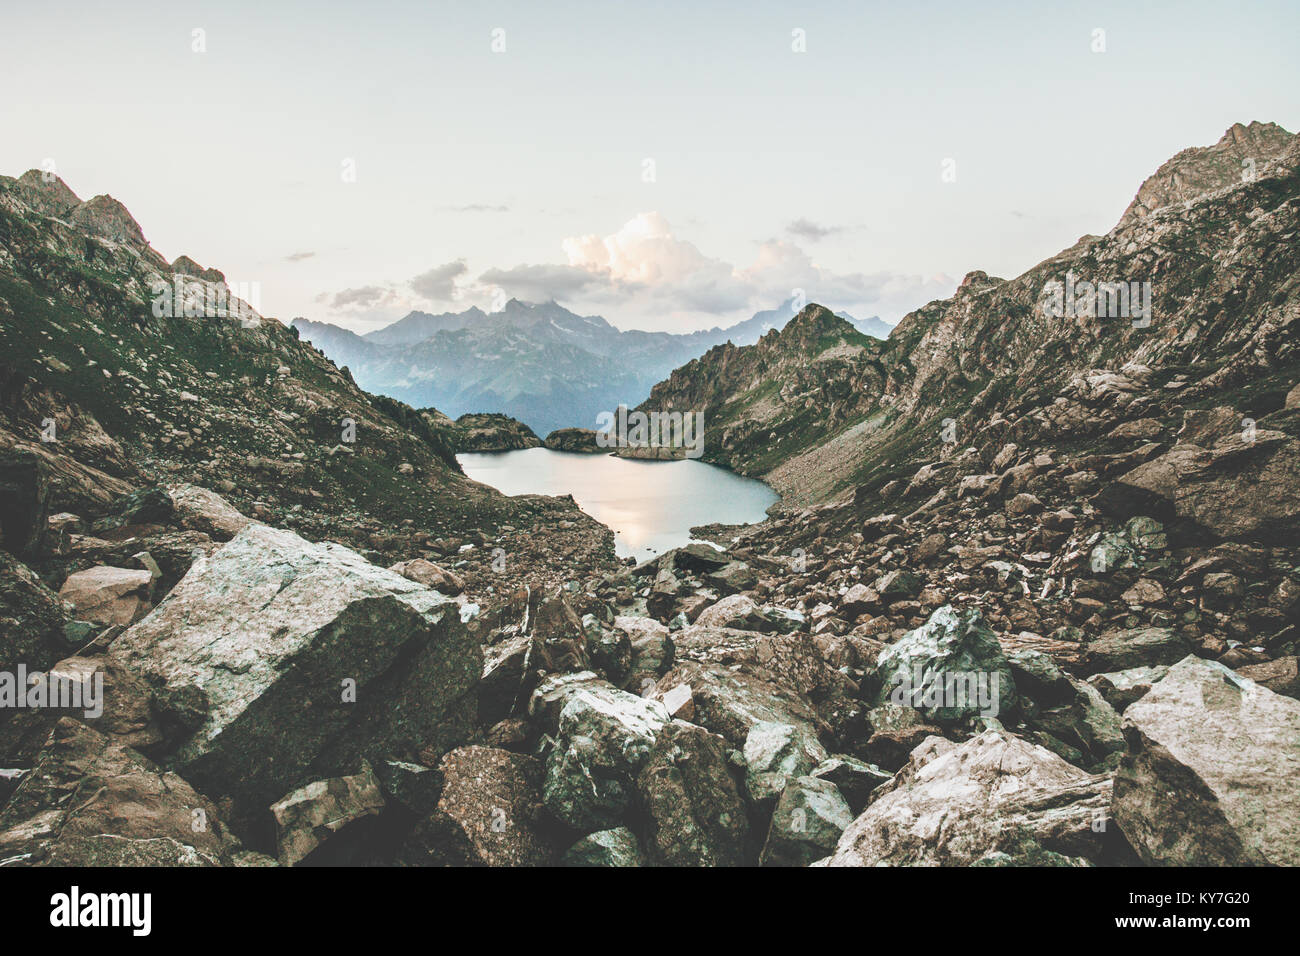 Lake and rocky Mountains Landscape Summer Travel serene scenic view atmospheric scene - Stock Image